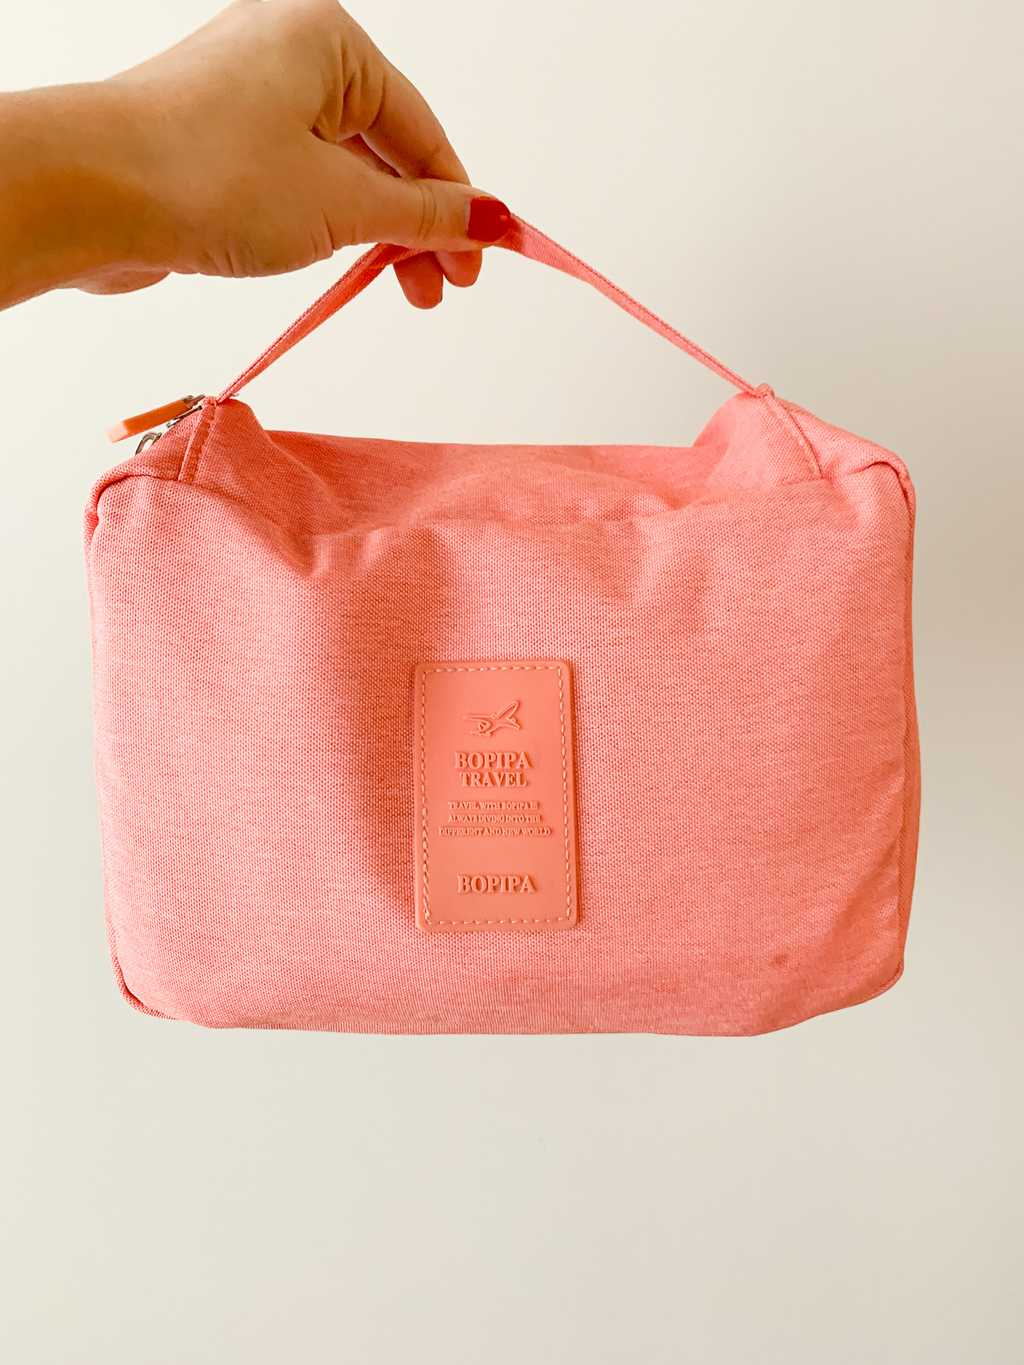 Bopipa travel pouch in pink